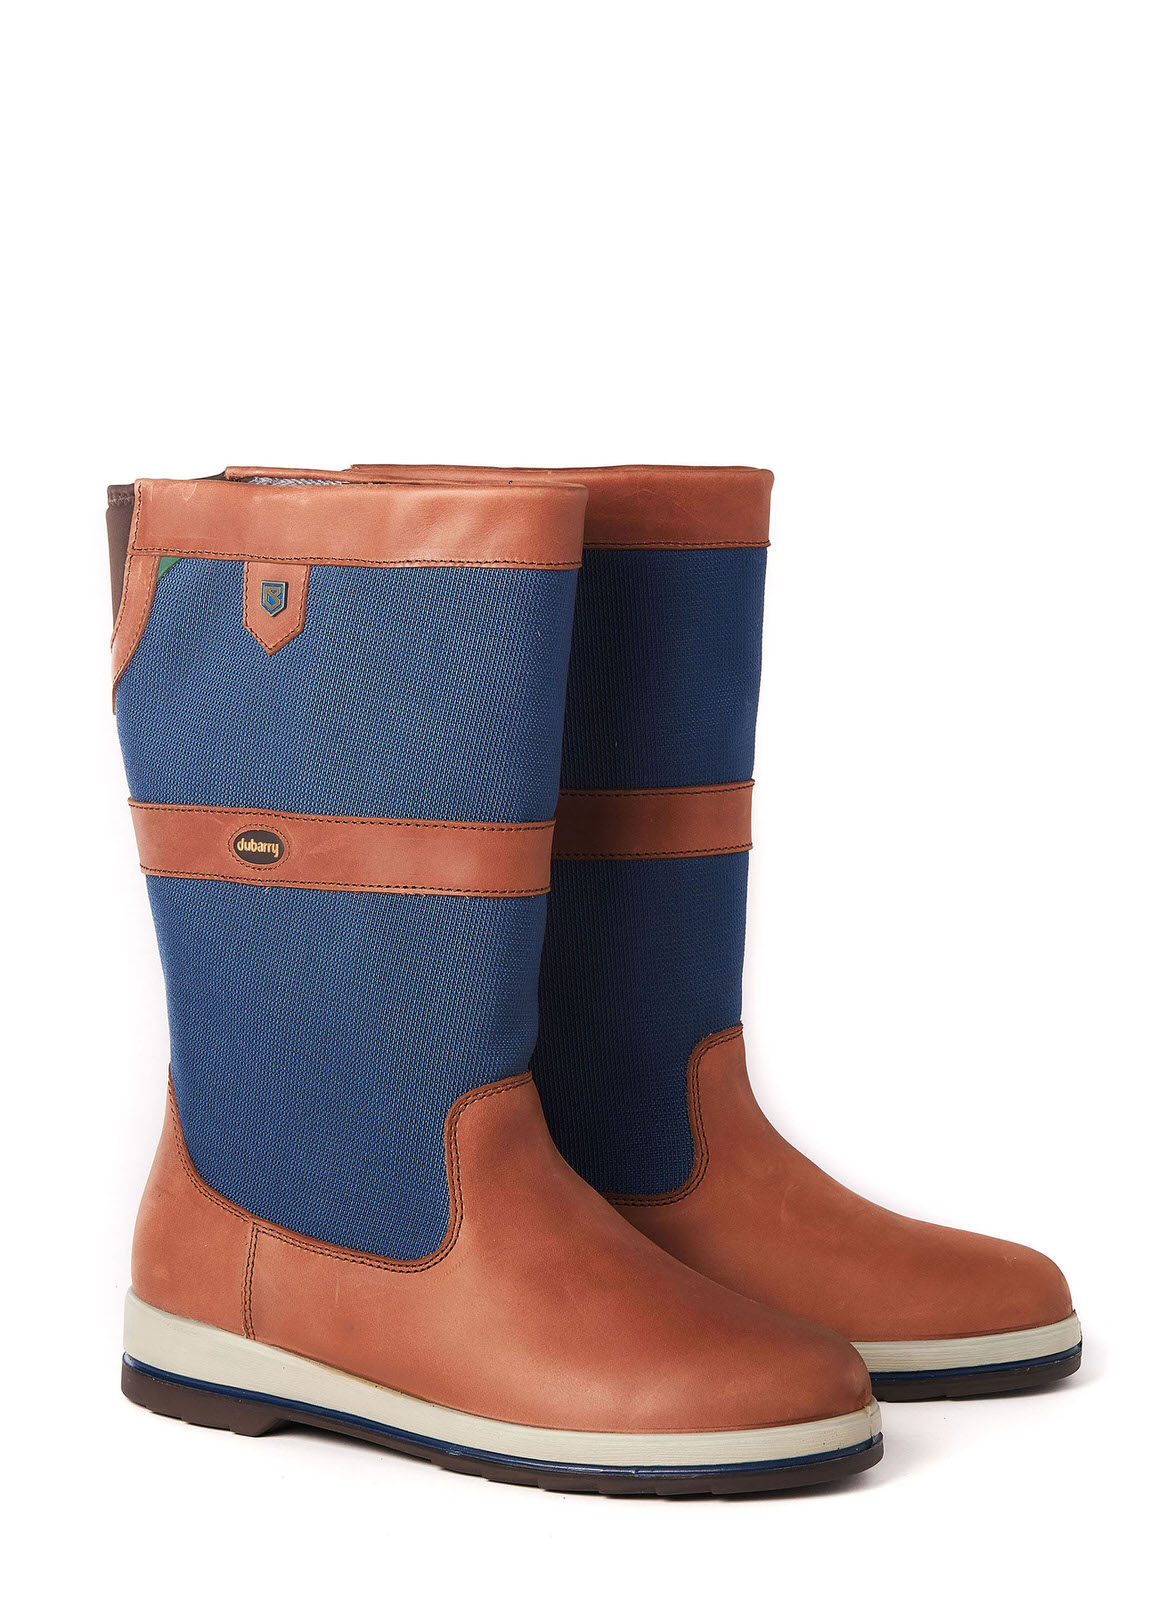 Shamrock ExtraFit™ Sailing Boot - Navy/Brown